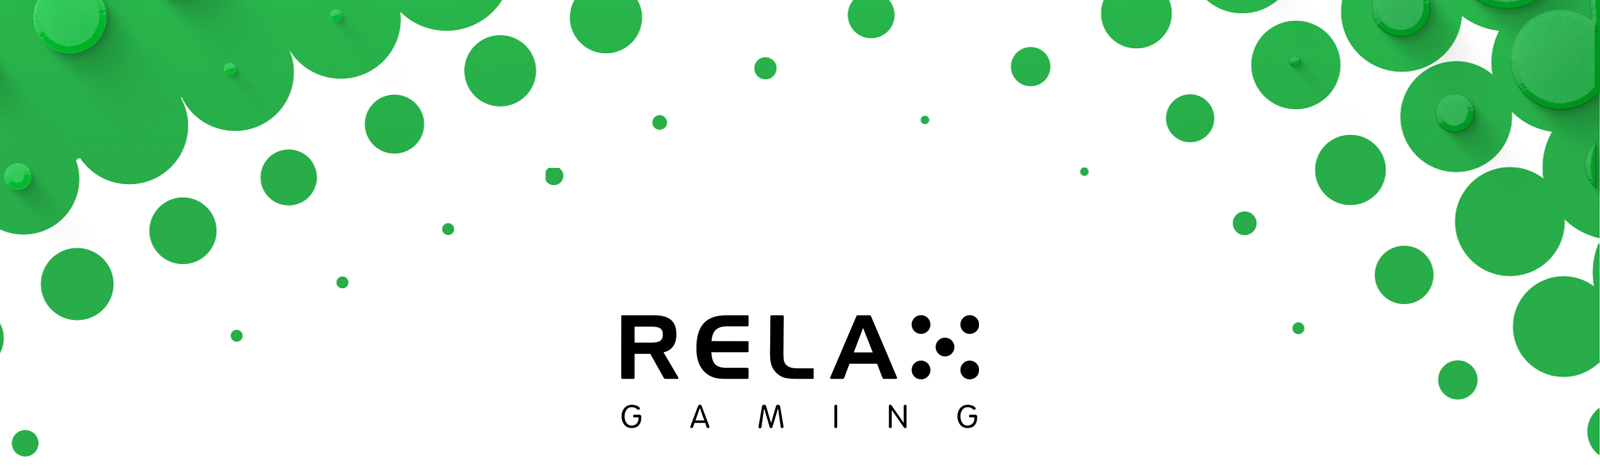 Enteractive creates a new Bingo experience with Relax Gaming!